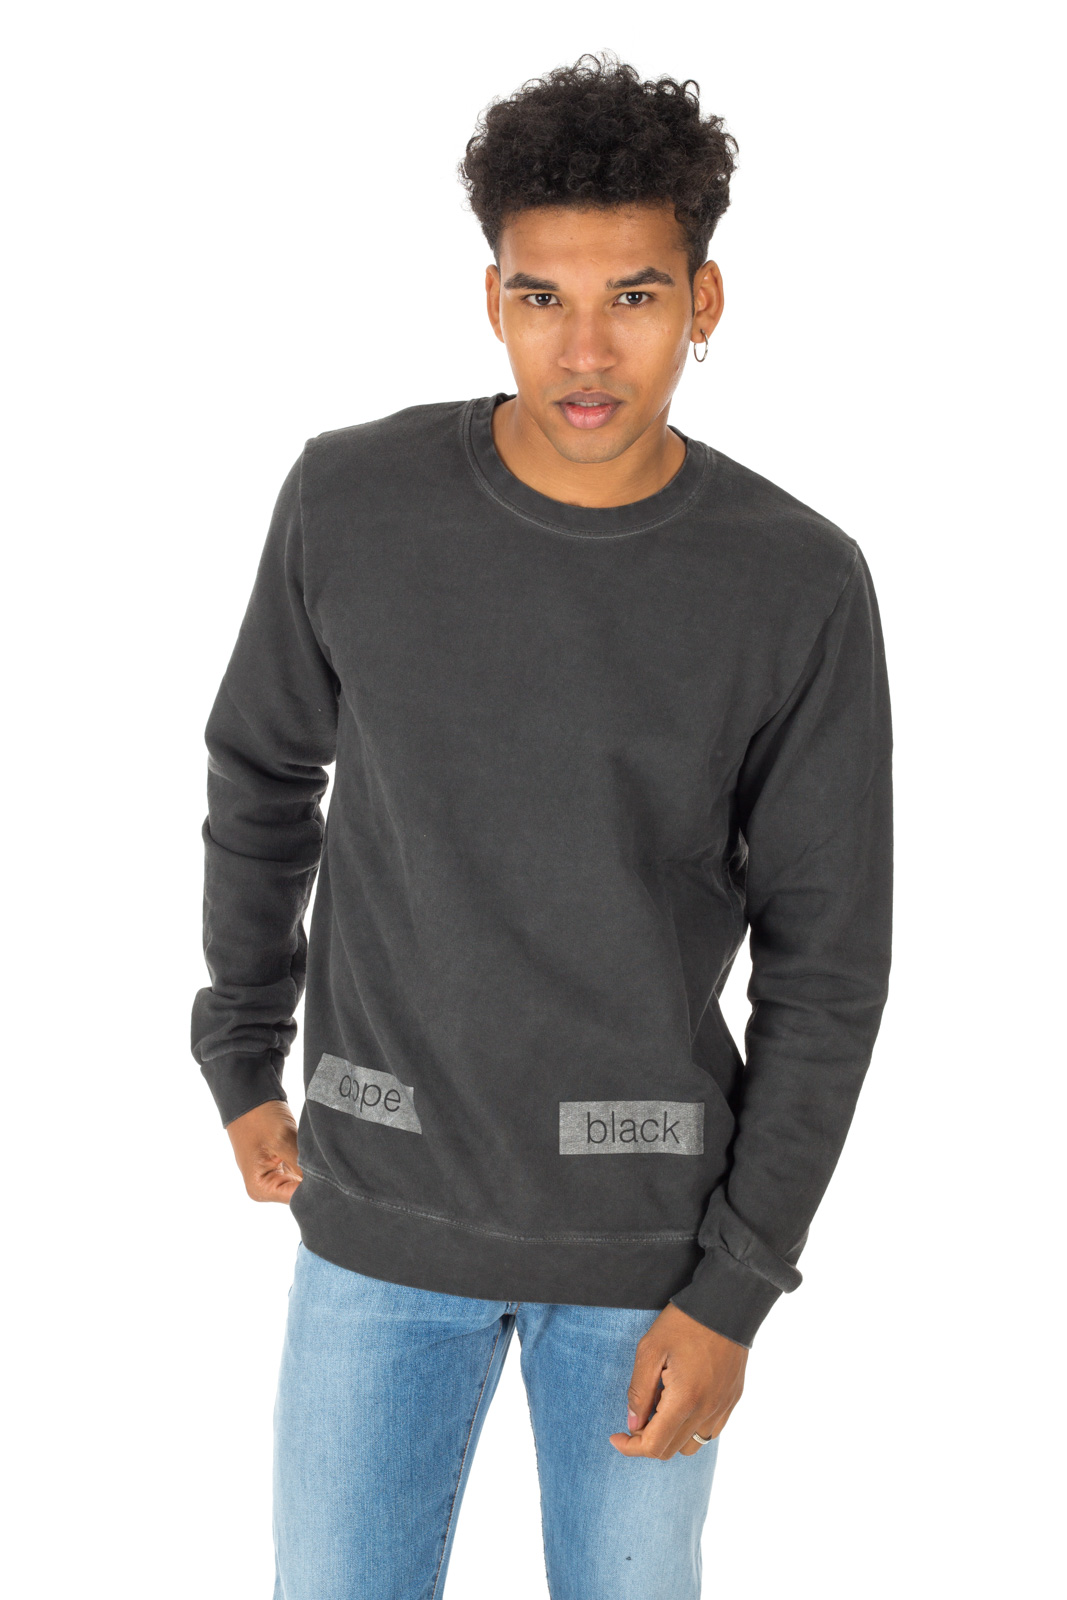 Pyrex - Dark Gray Gray Sweatshirt